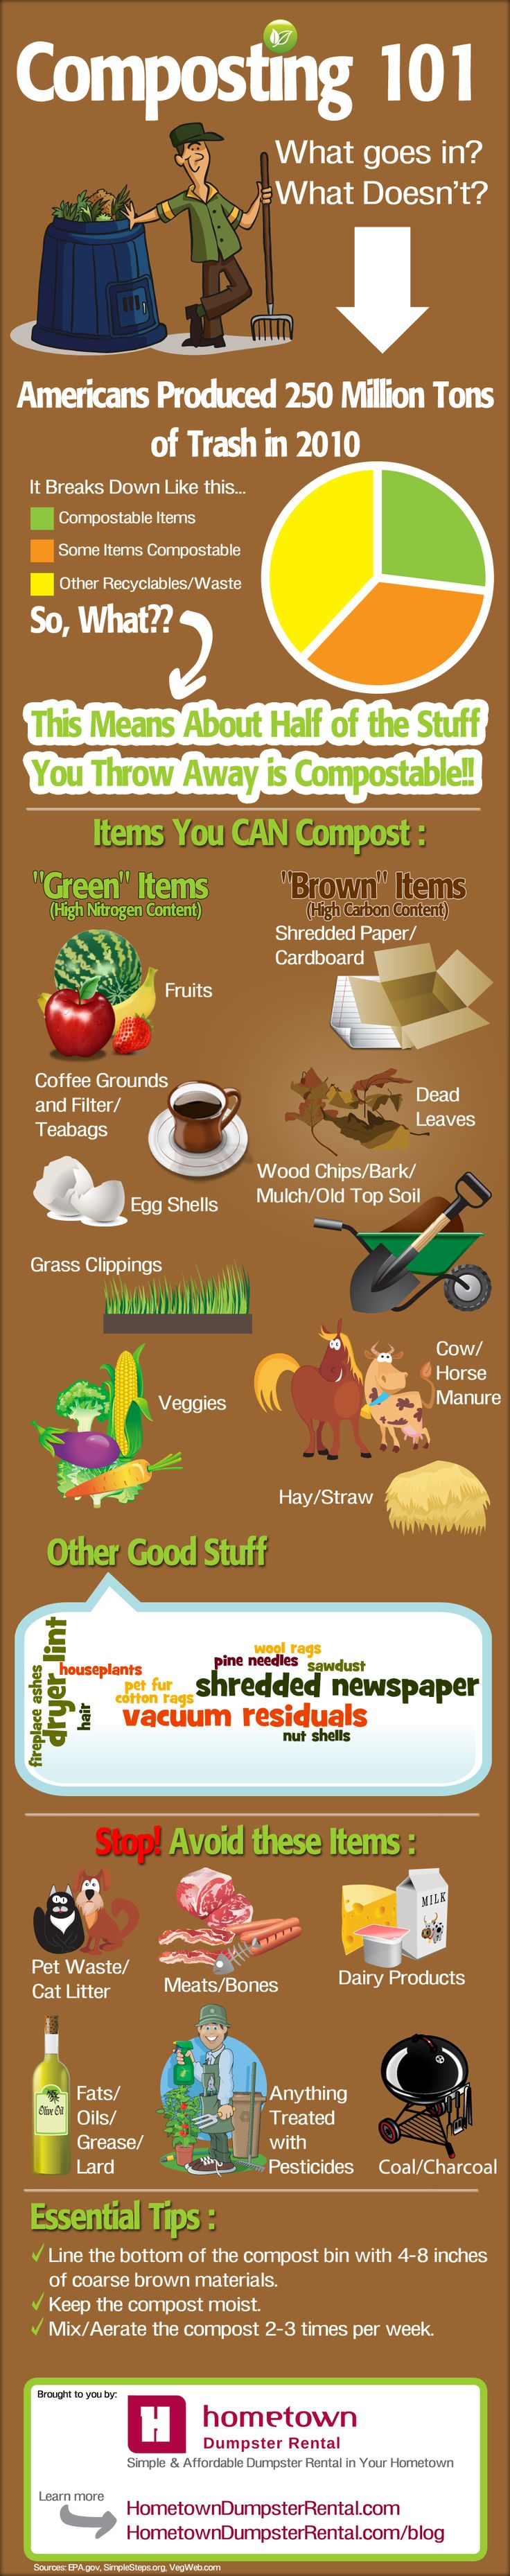 Learn to Compost - Composting 101 Infographic